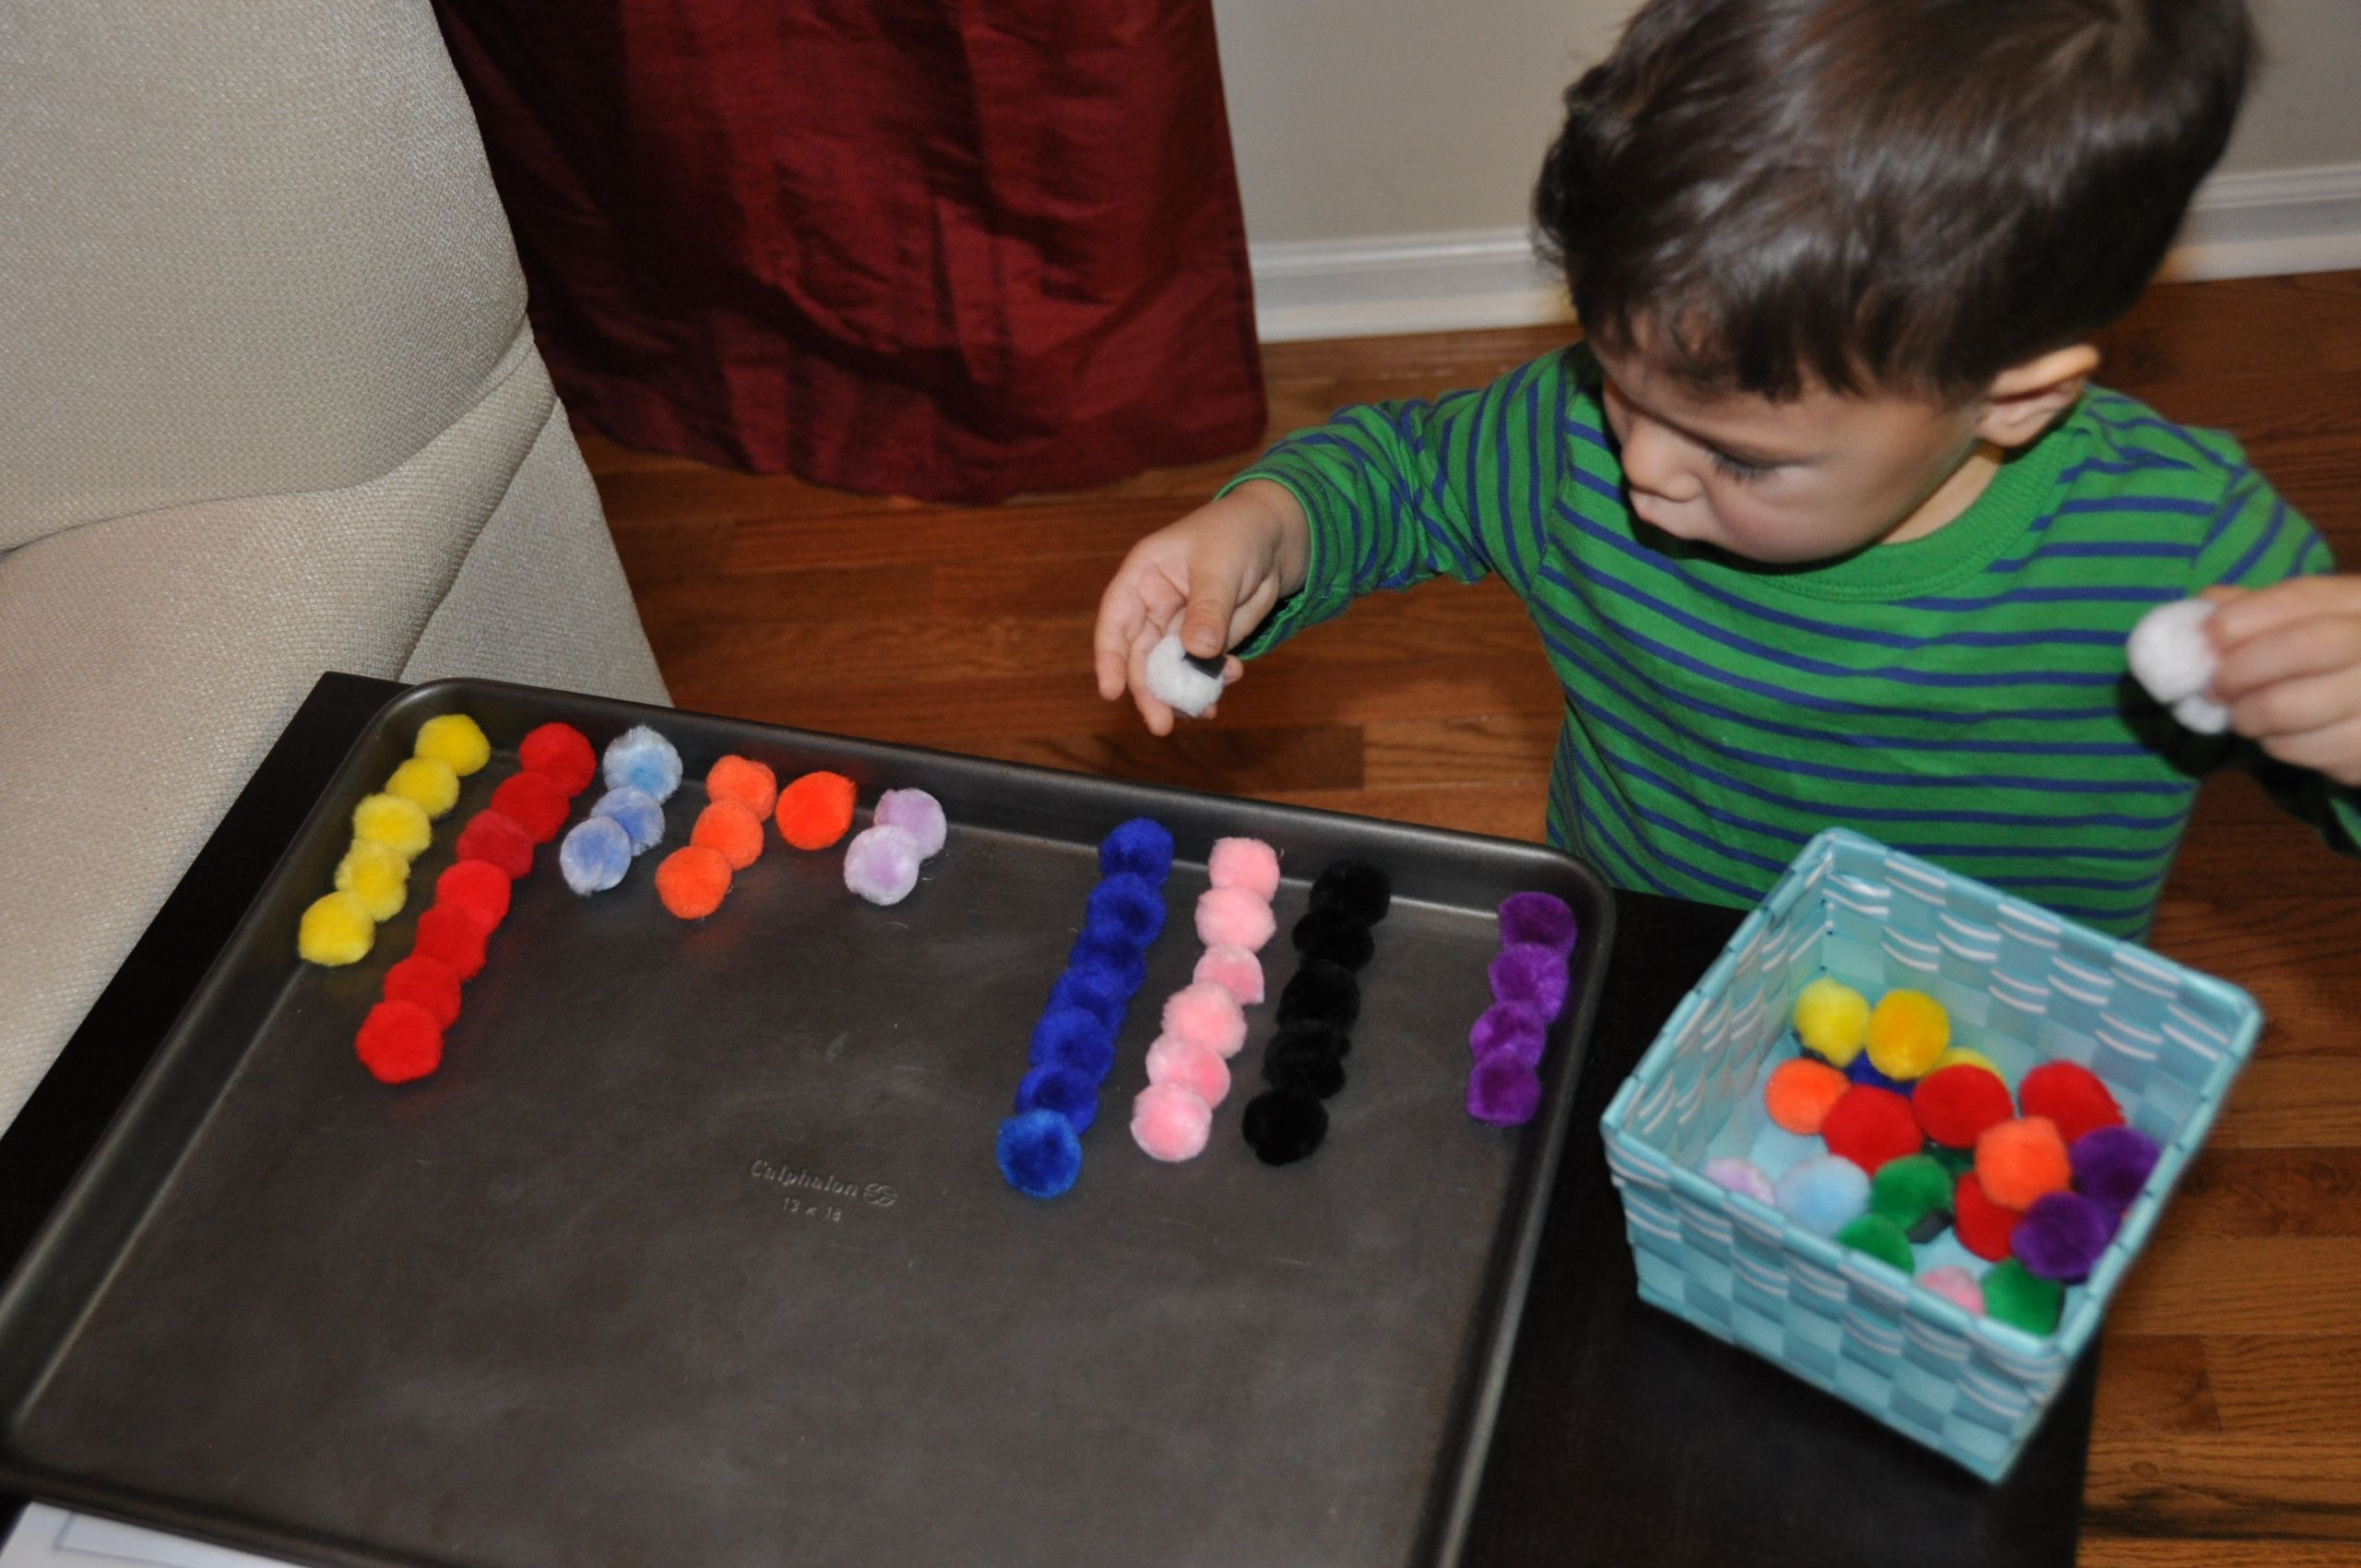 DIY Activity Table For Toddlers  Homemade Toy Magnetic Pompoms